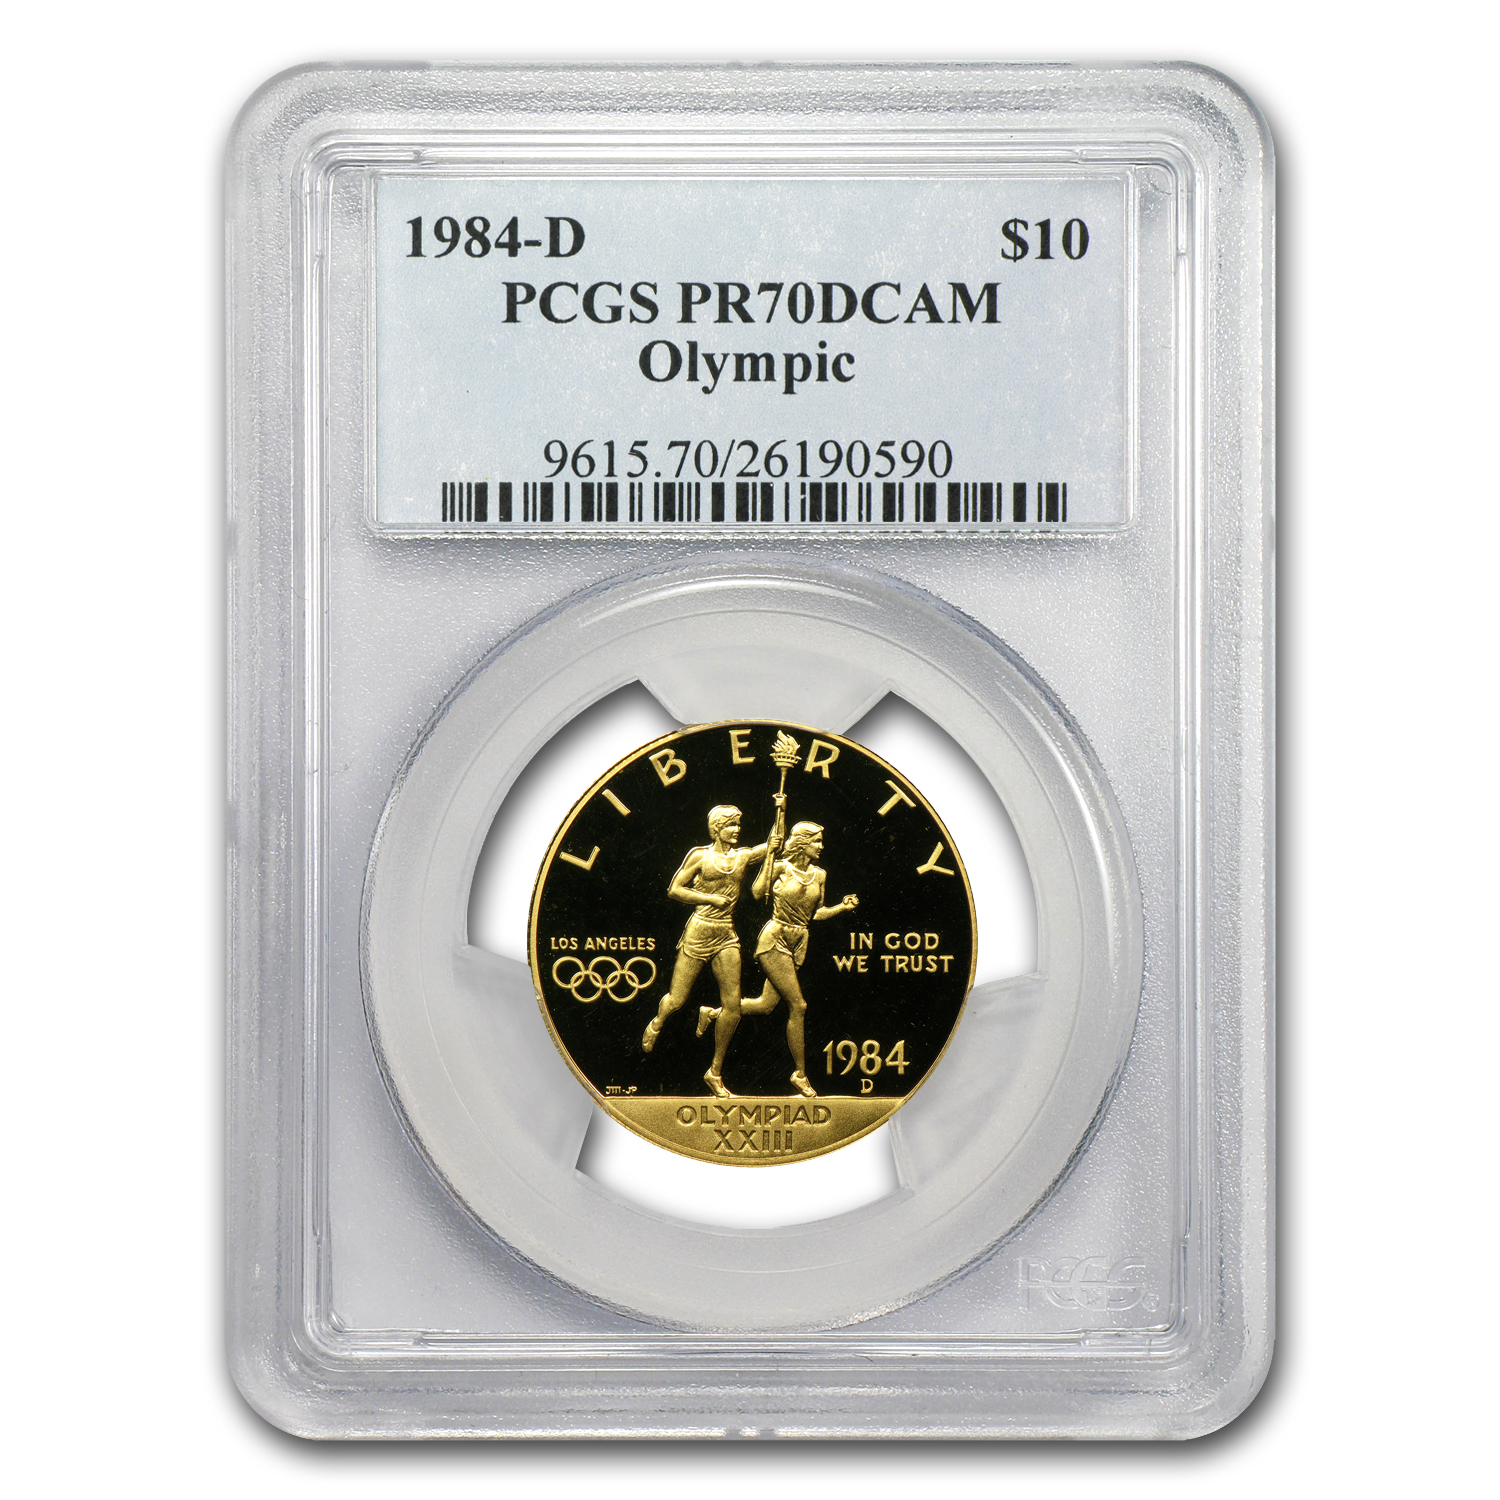 1984-D Gold $10 Commemorative Olympic PR-70 PCGS